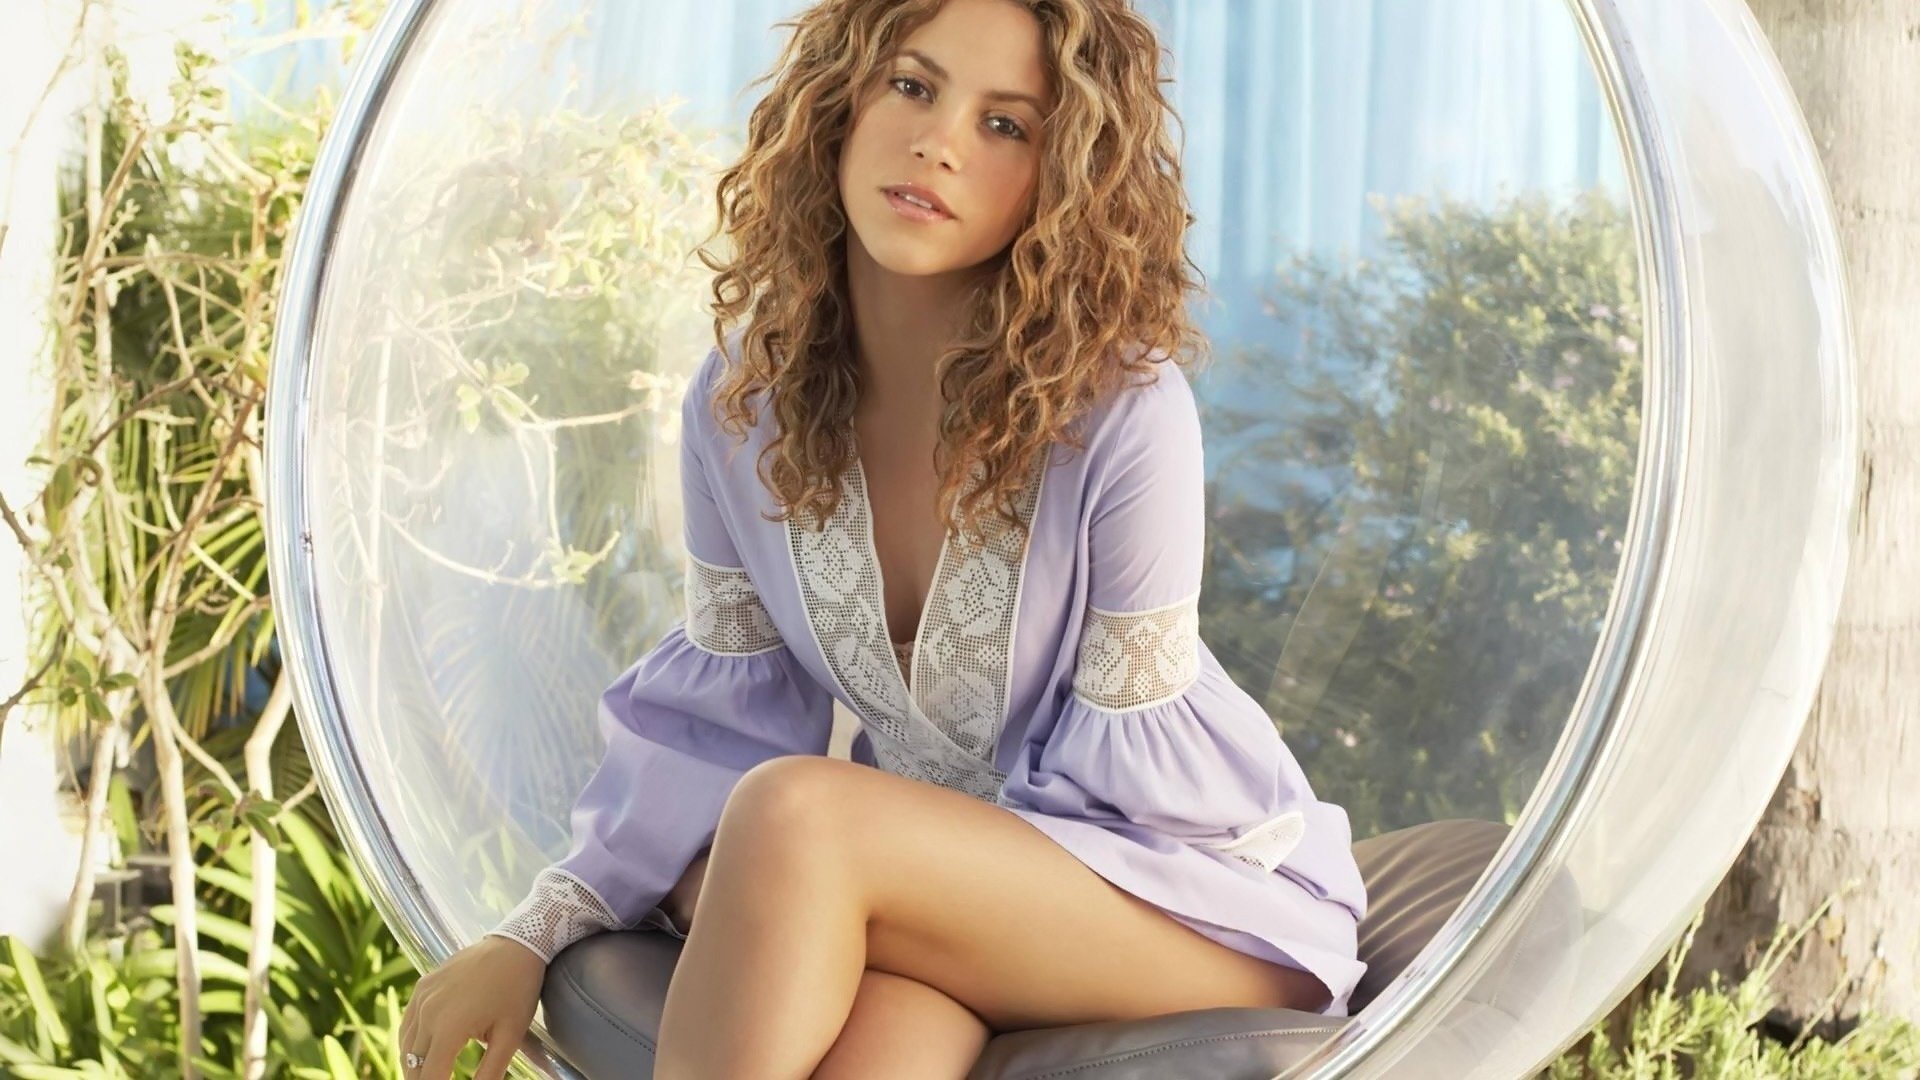 Free Download Shakira Background Id423509 Hd 1080p For Desktop